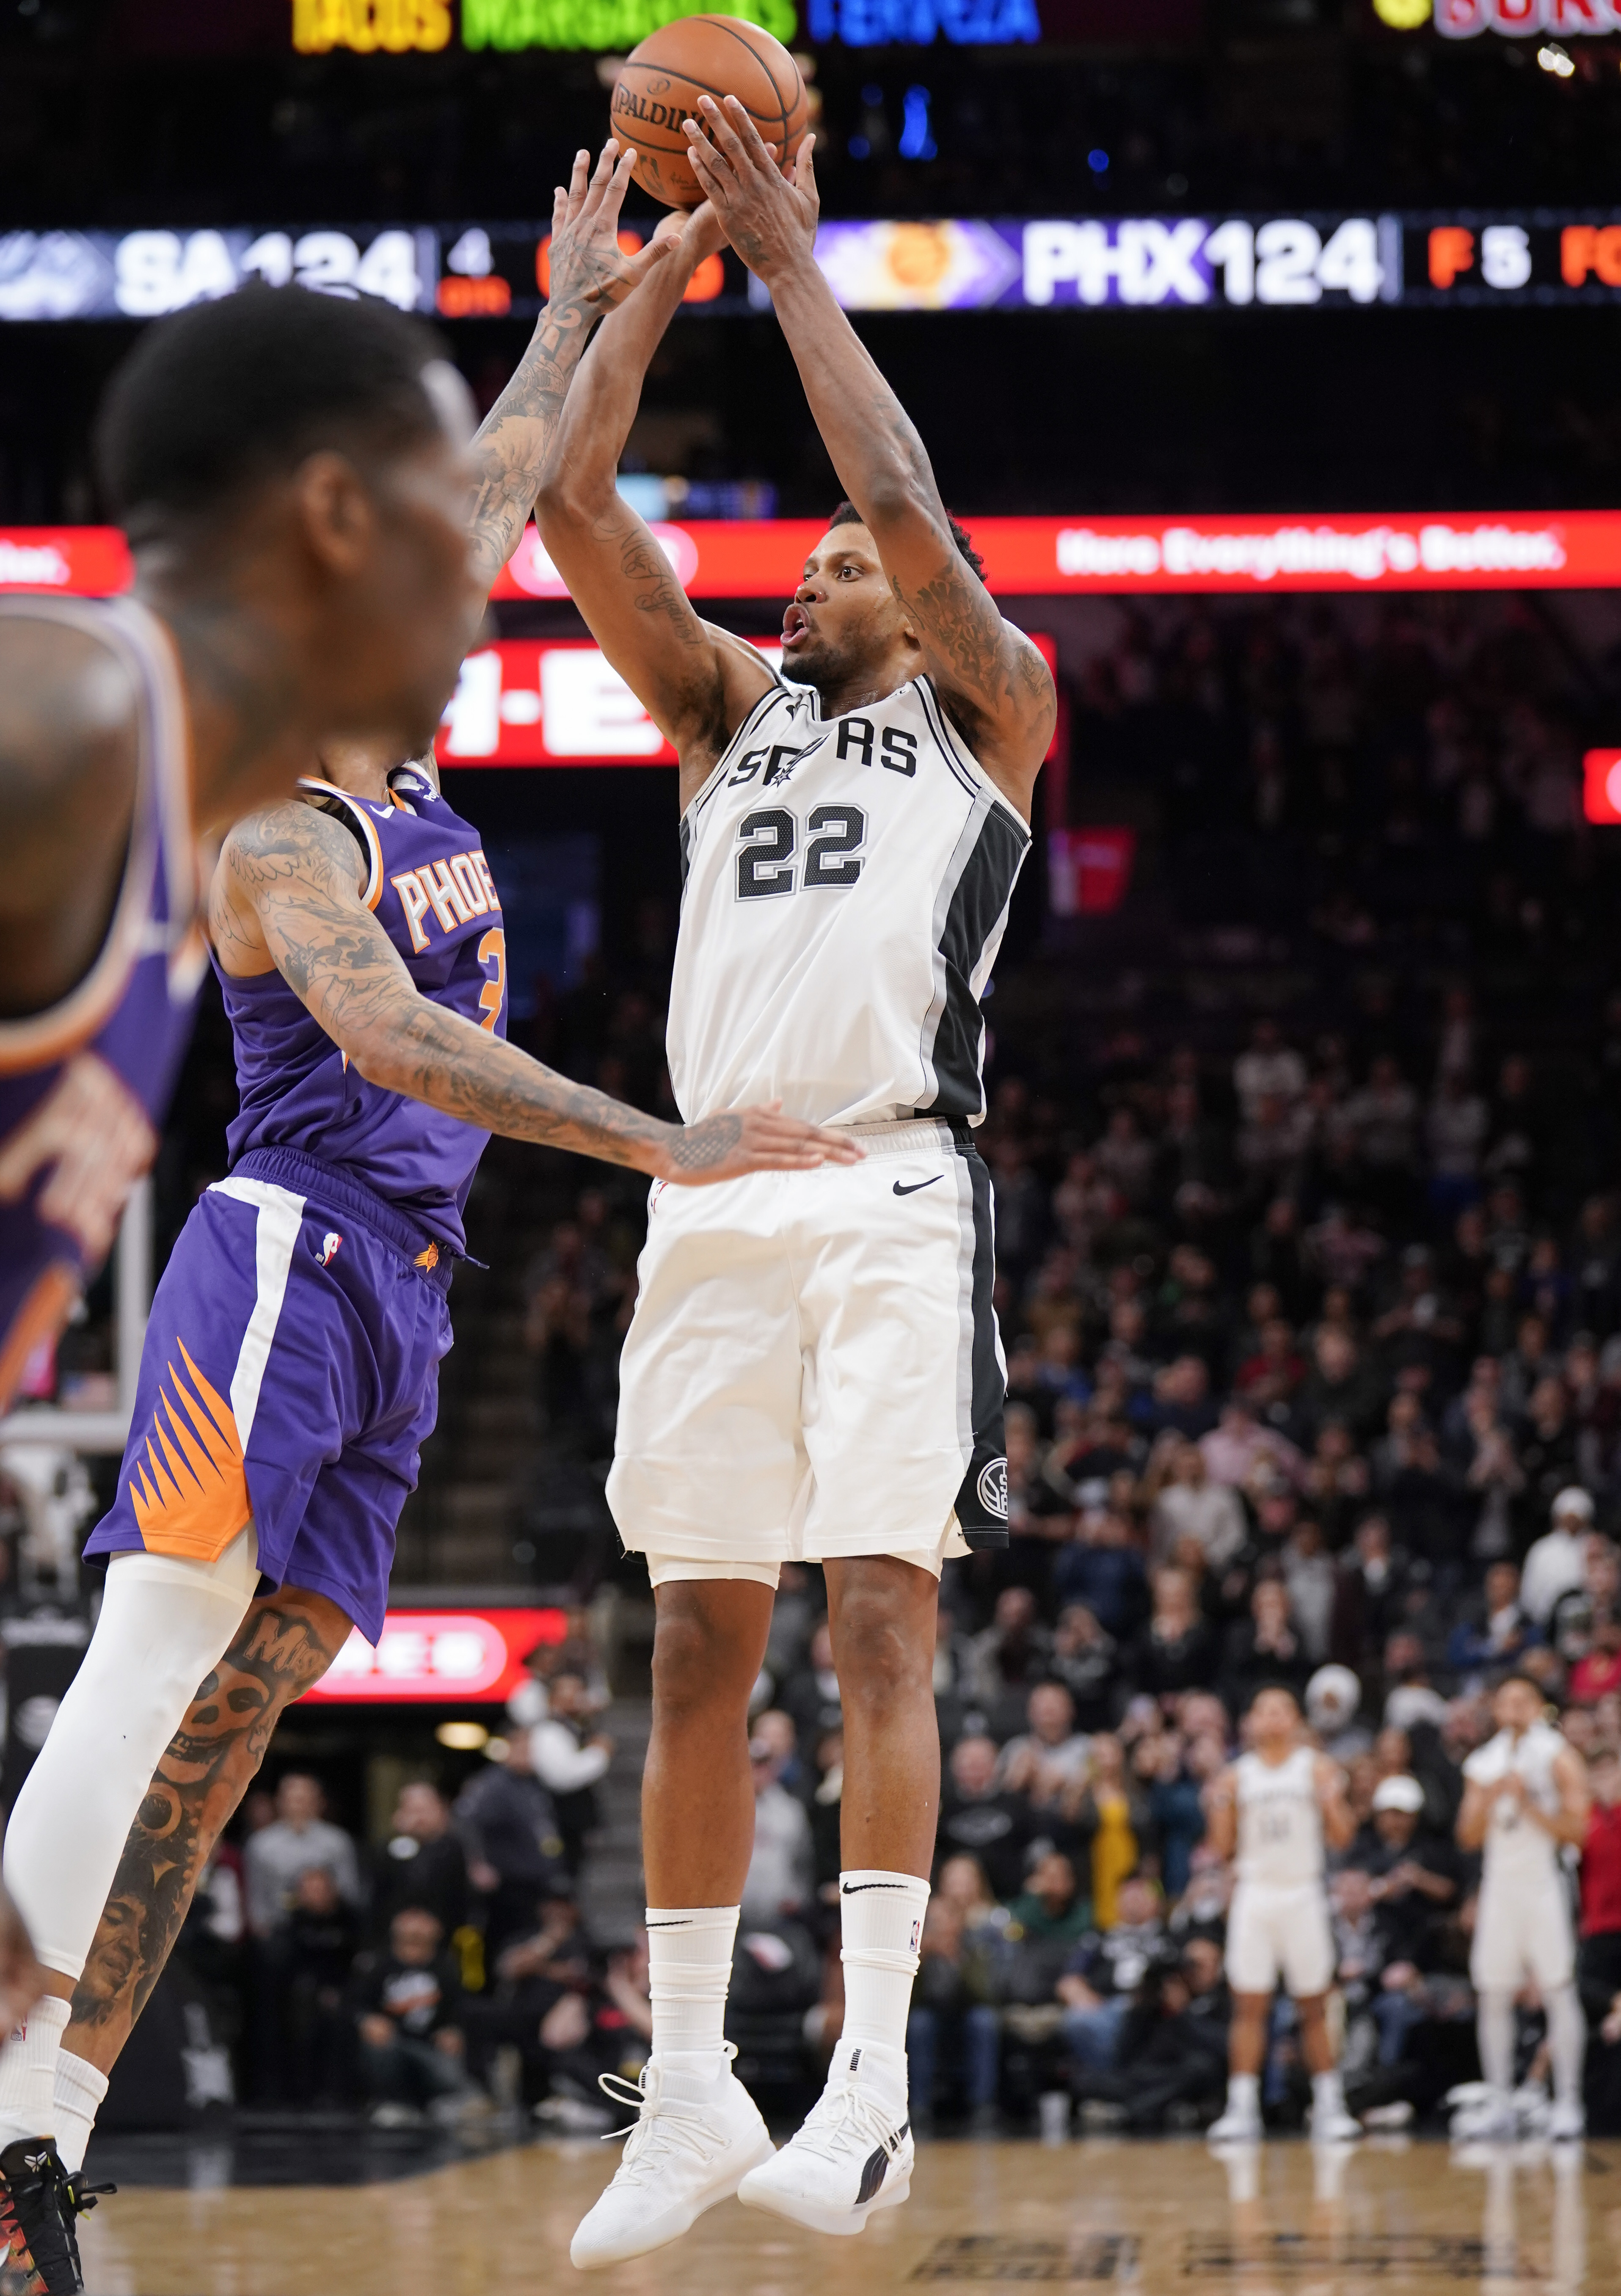 Gay's buzzer beater gives Spurs 126-124 win over Suns